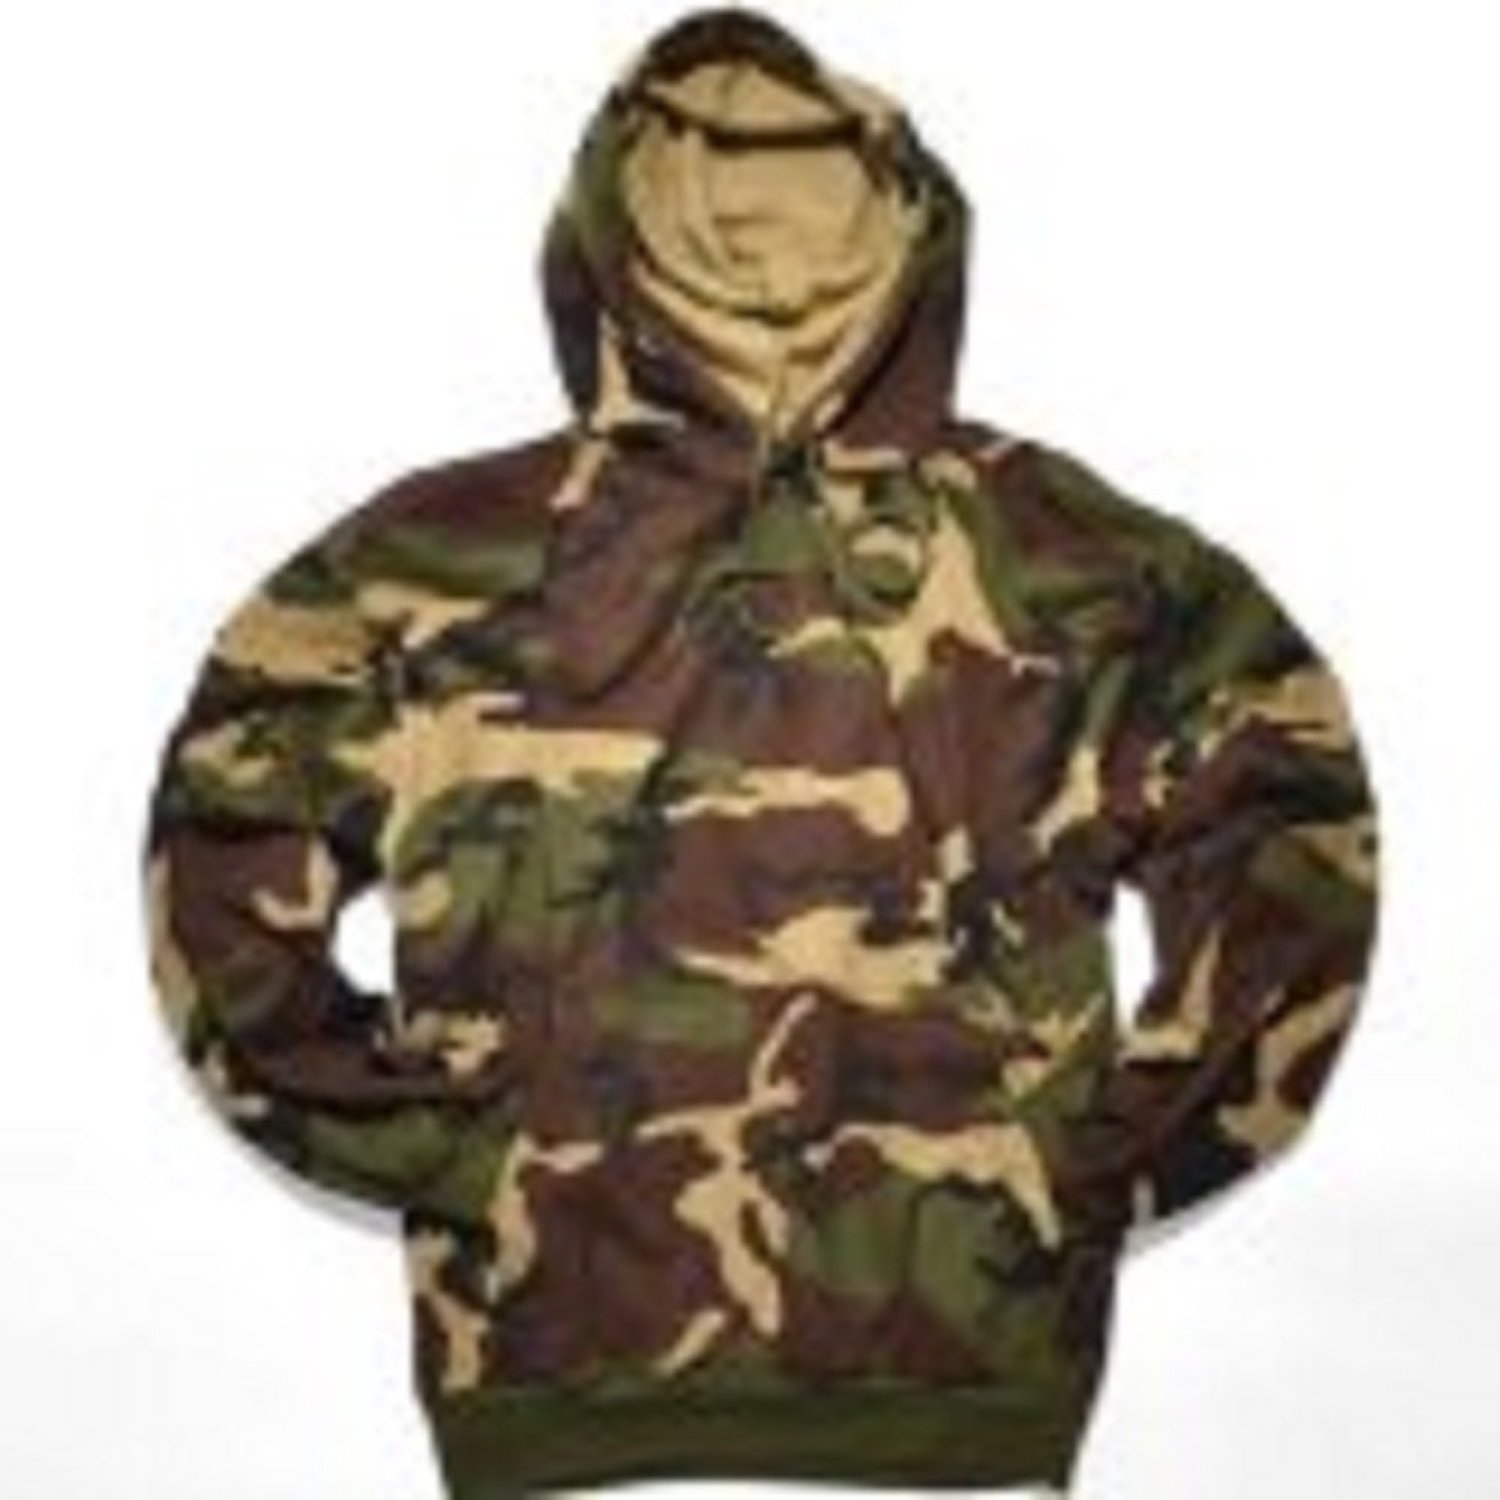 Amazon.com: woodland camo pullover hooded sweatshit by rothco: athletic sweatshirts: sports & outdoors